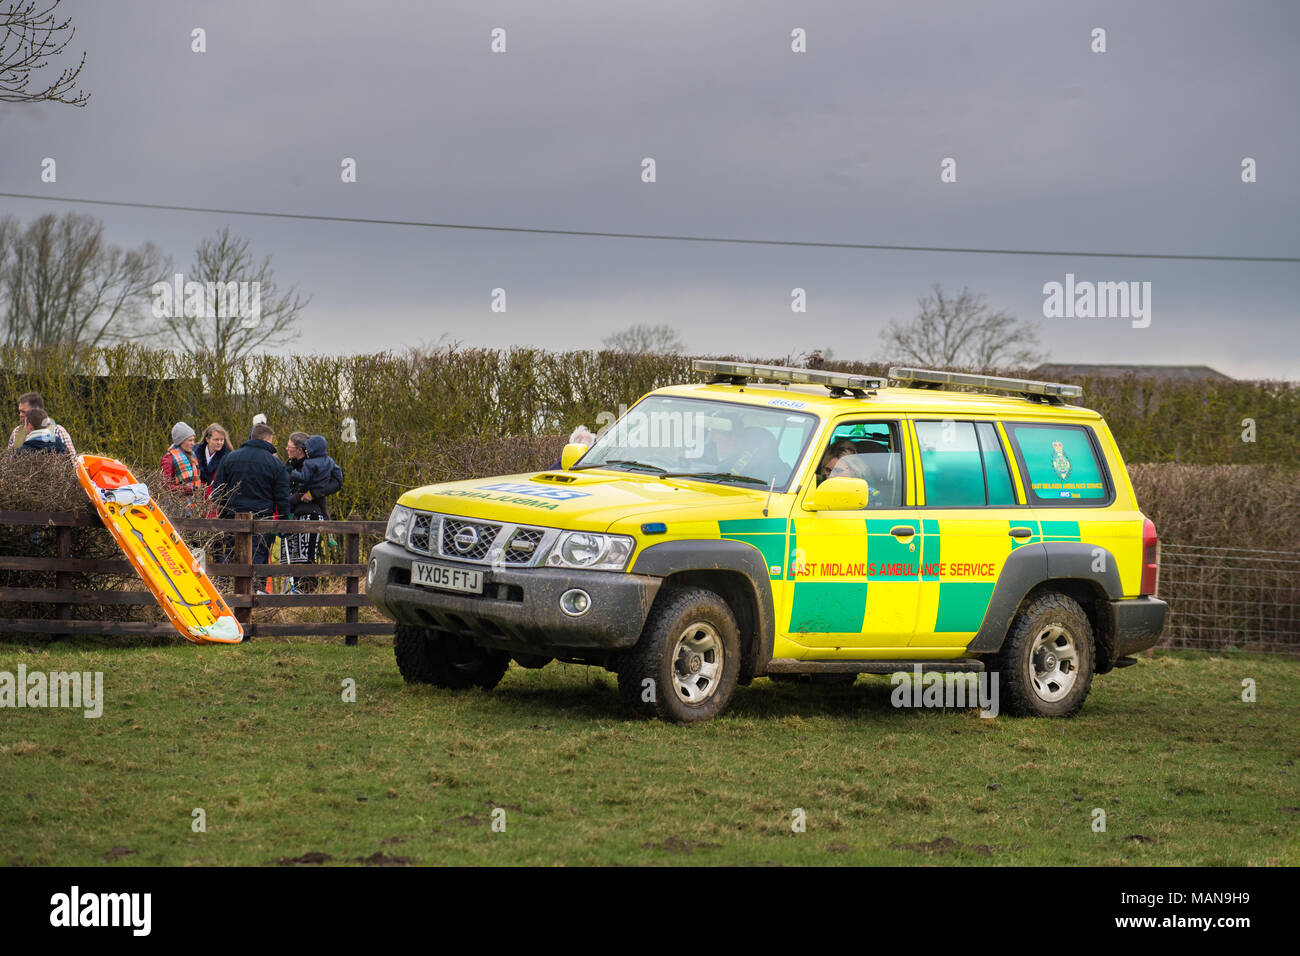 Ambulance and stretcher on standby to assist injured participants in the annual tussle of villagers from Hallaton with rival villagers from the nearby - Stock Image